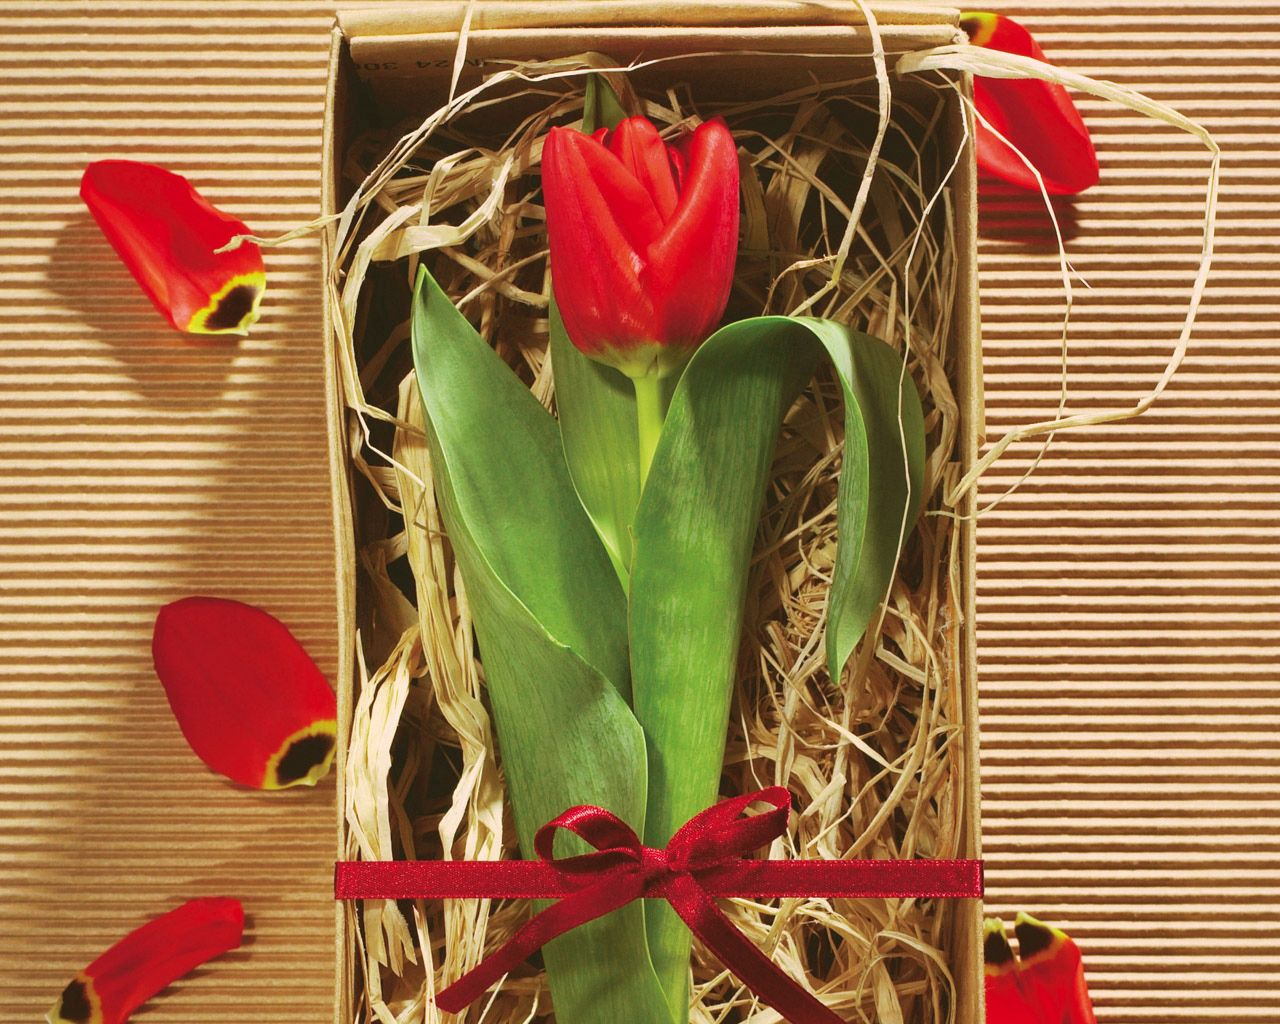 121438 download wallpaper Flowers, Tulip, Flower, Box, Capsule, Present, Gift, Bow, Petals screensavers and pictures for free